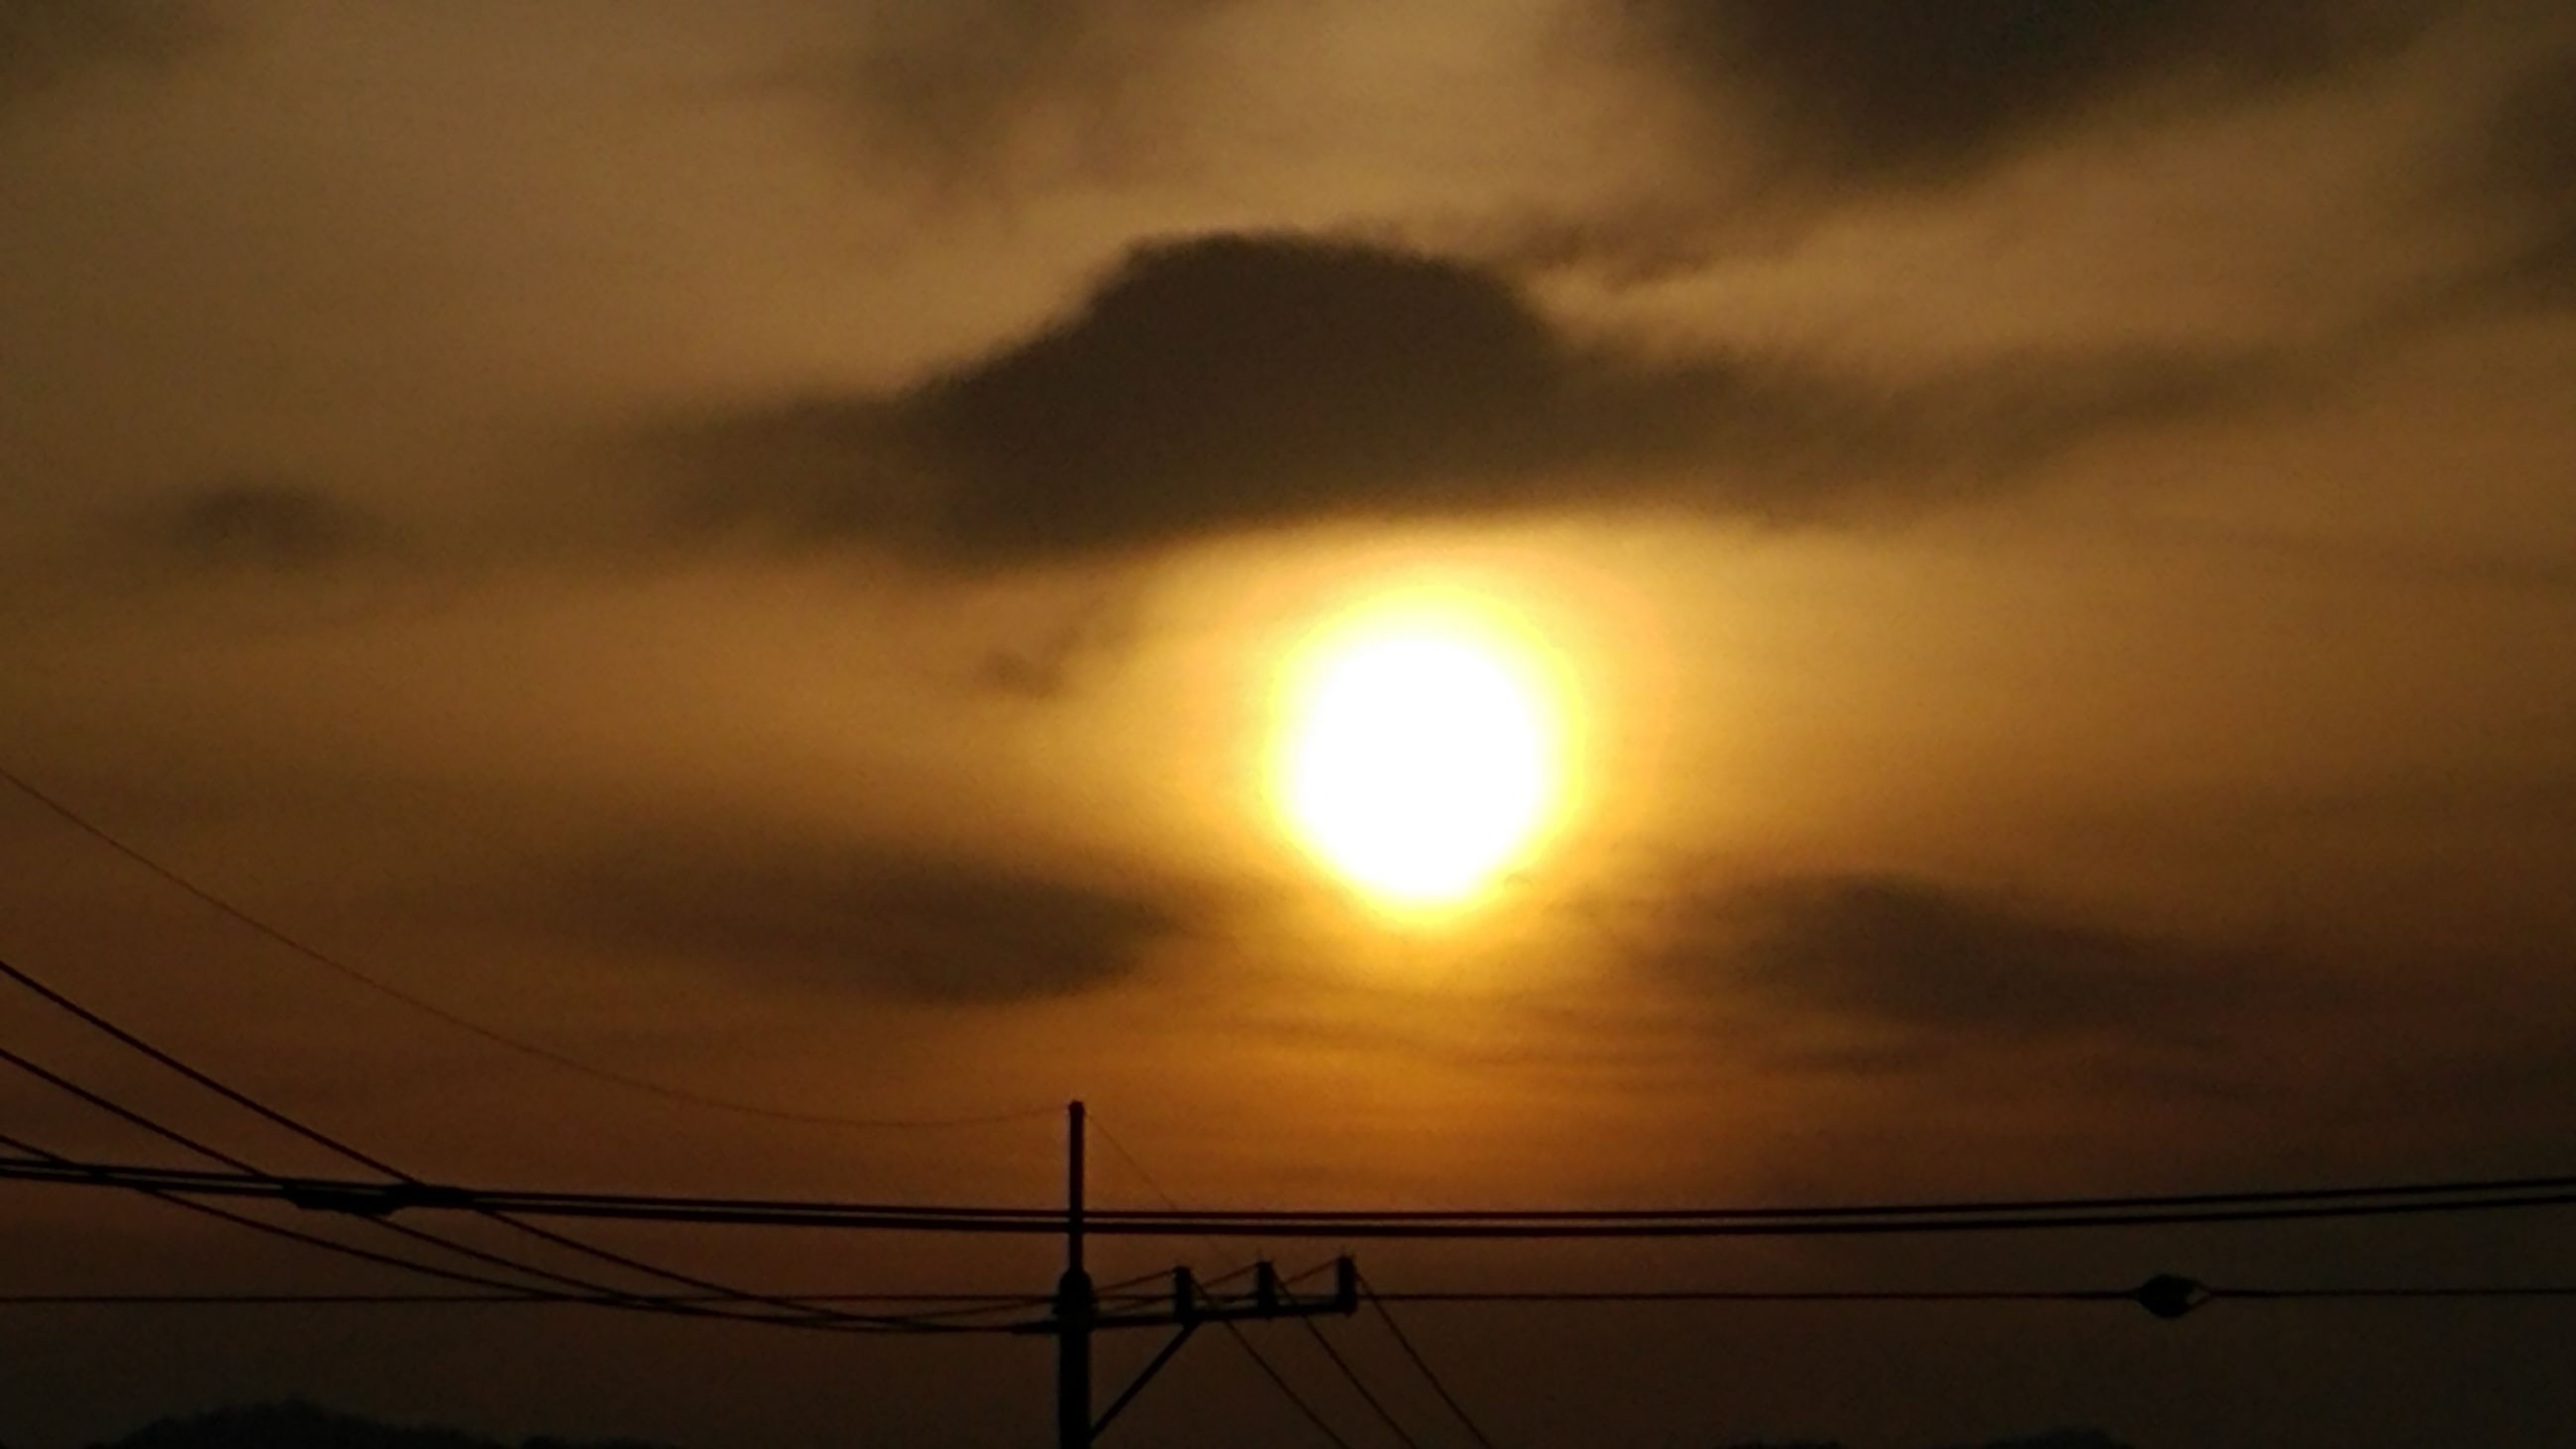 sunset, electricity, connection, power supply, sun, sky, cable, no people, power line, silhouette, fuel and power generation, beauty in nature, nature, outdoors, electricity pylon, technology, scenics, cloud - sky, electric pole, day